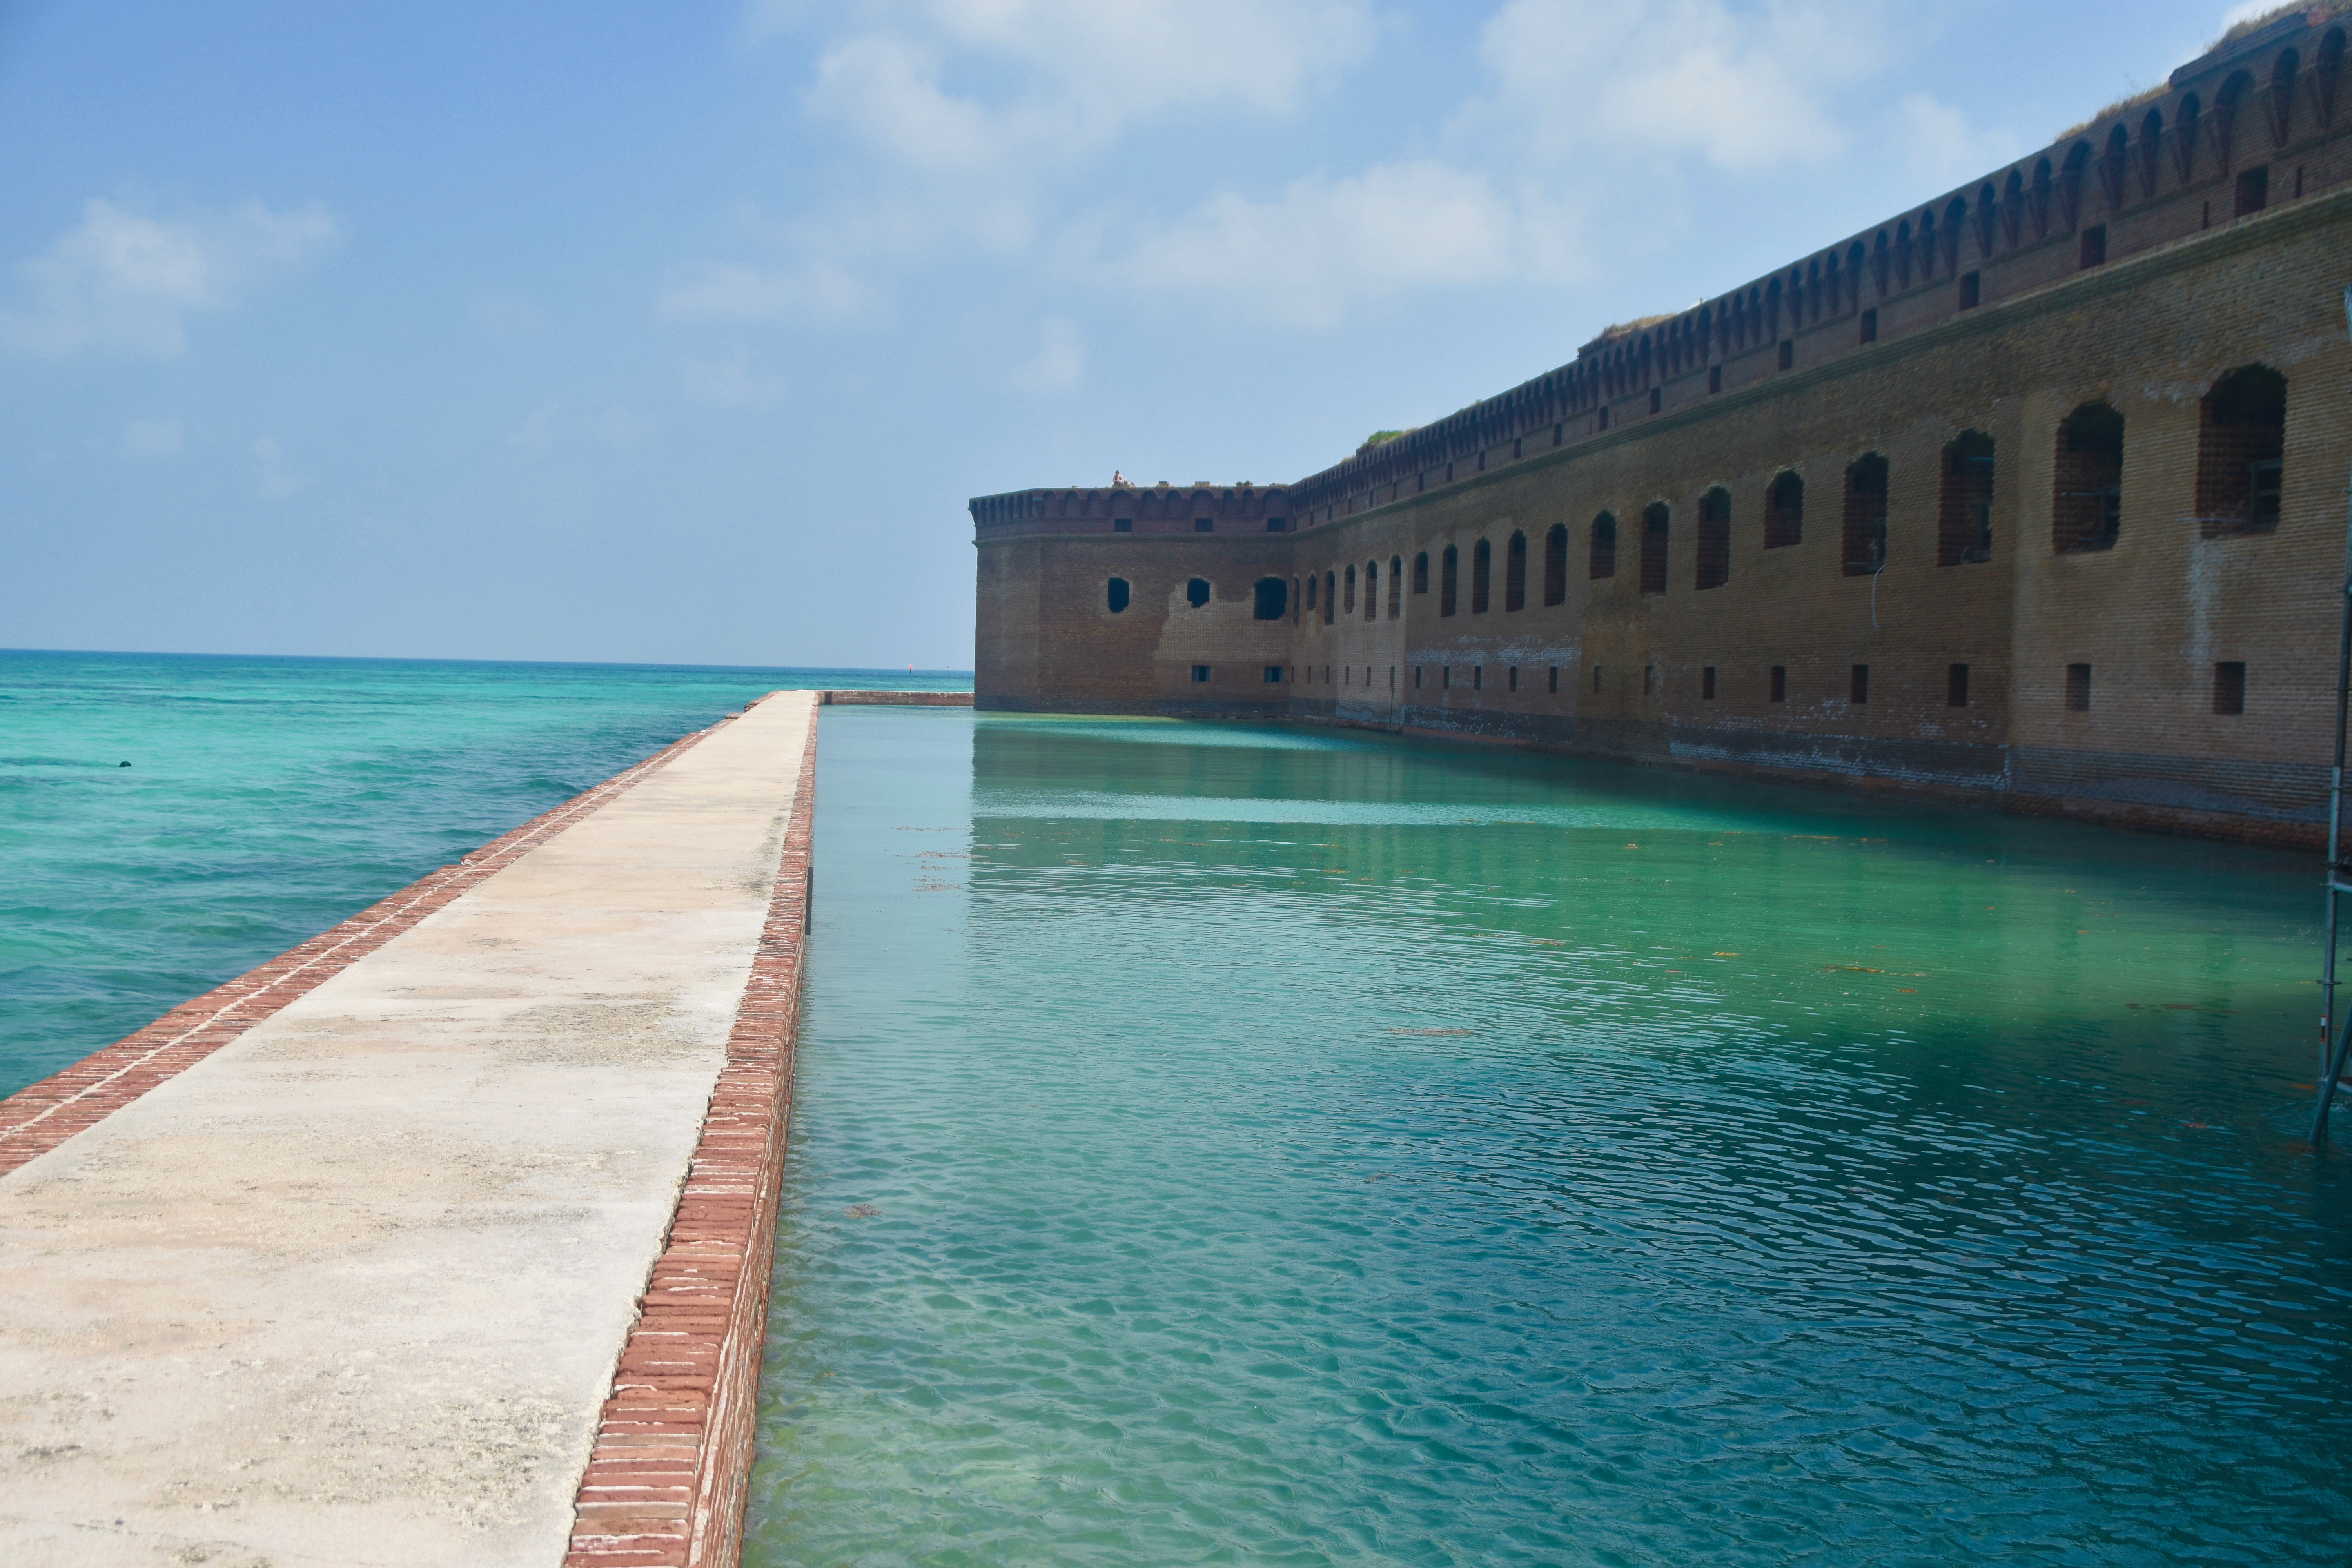 The Walk Along the Moat, Dry Tortugas